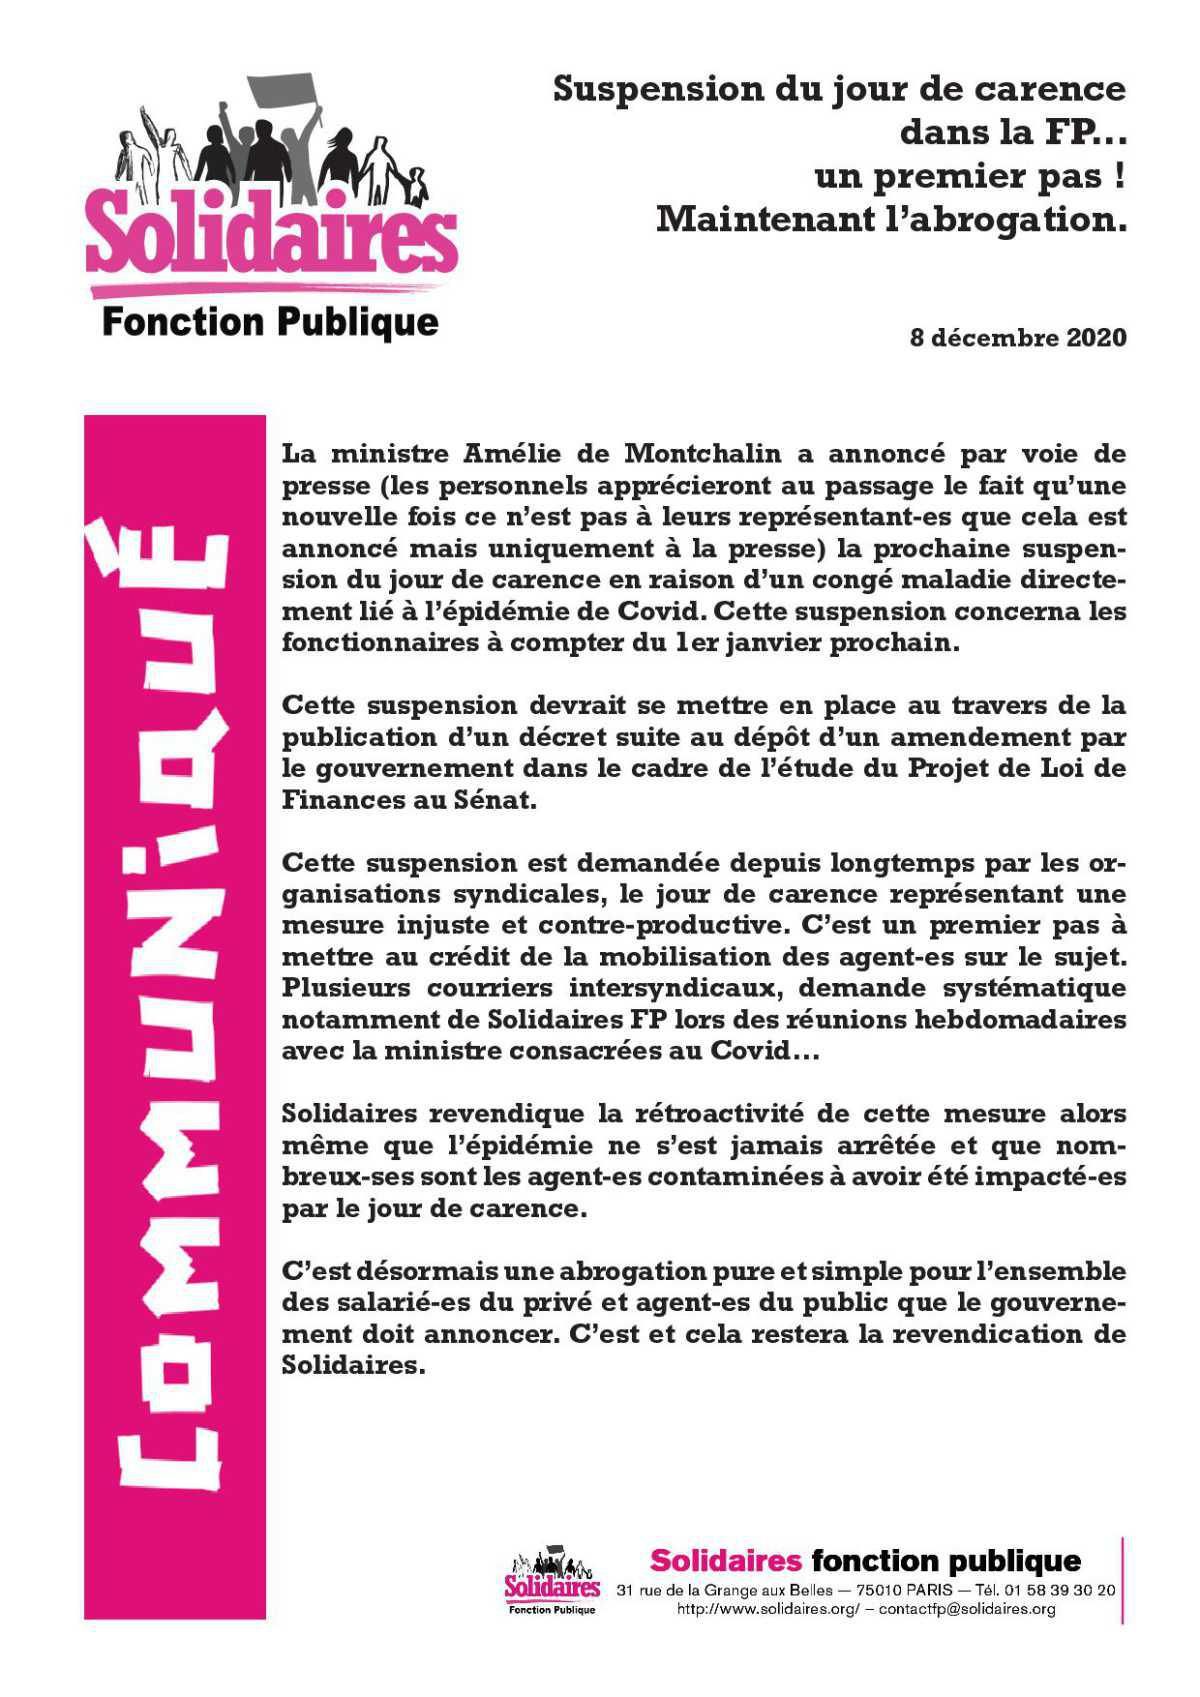 suspension du jour de carence à la FP- un 1er pas